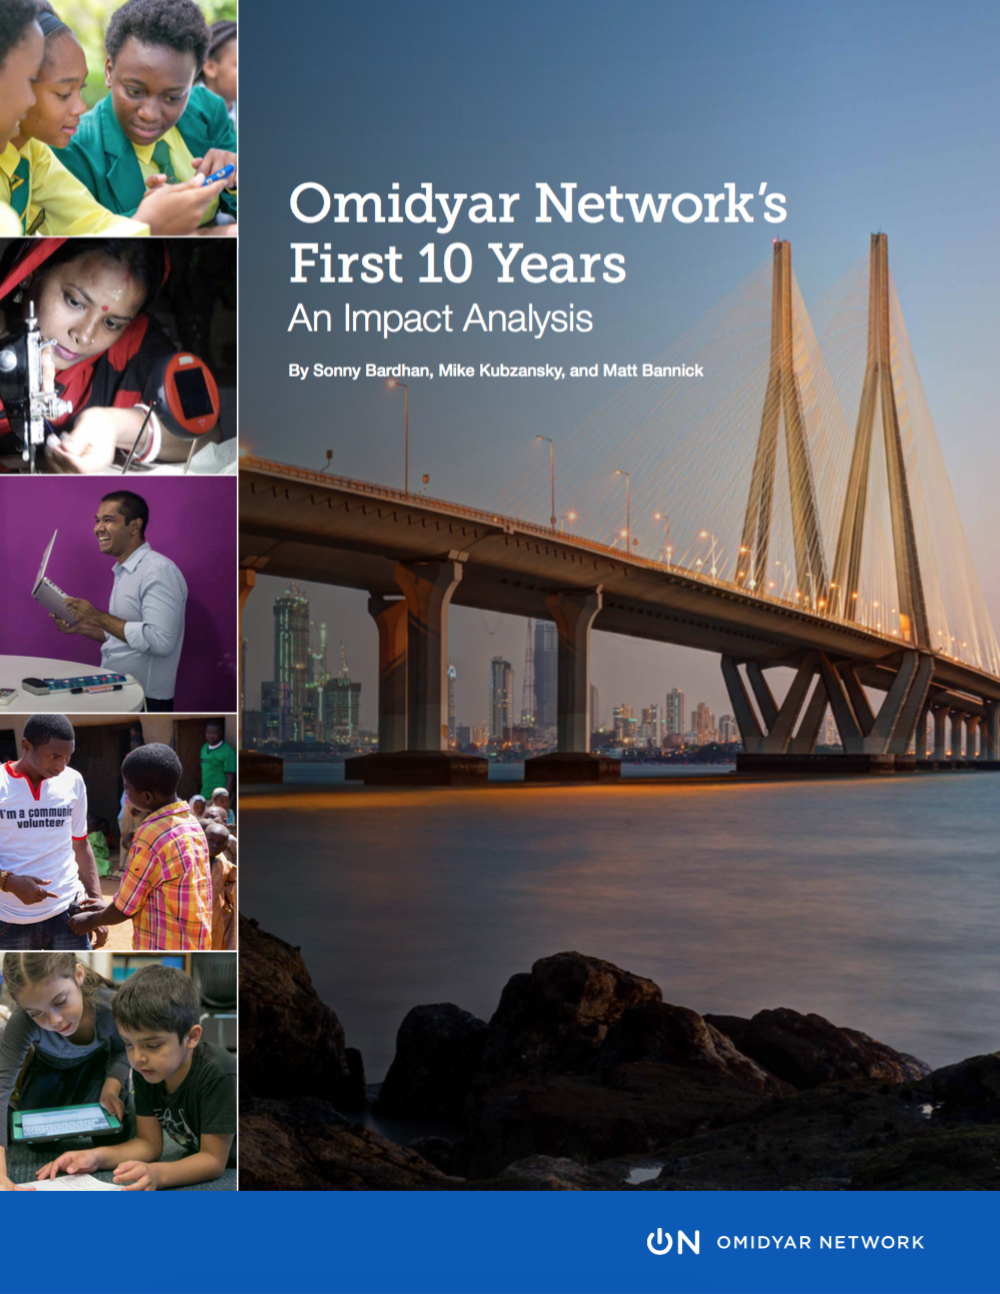 Omidya Networks First 10 Years- An Impact Analysis